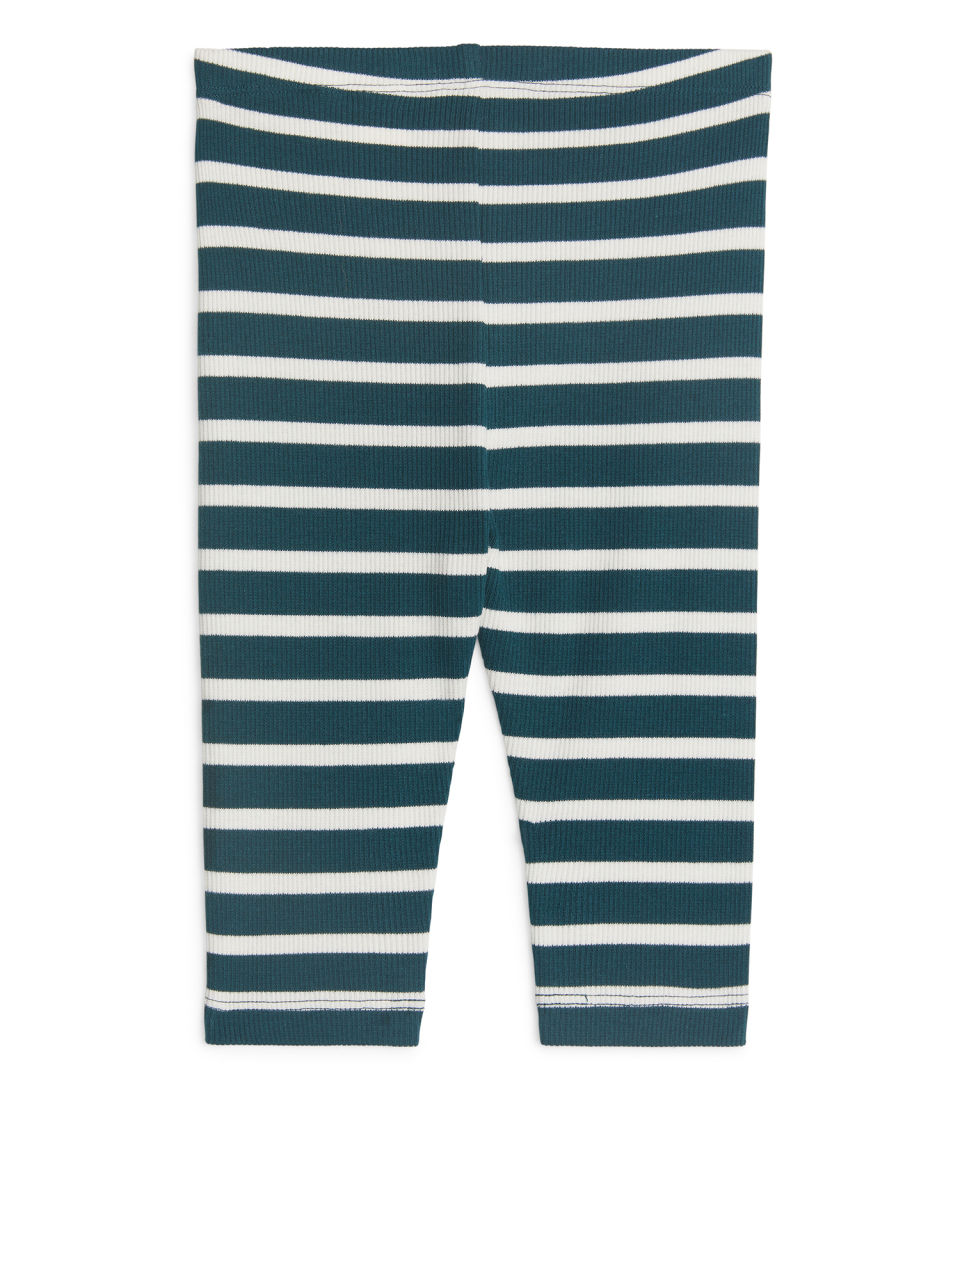 Side image of Arket jersey rib leggings in turquoise